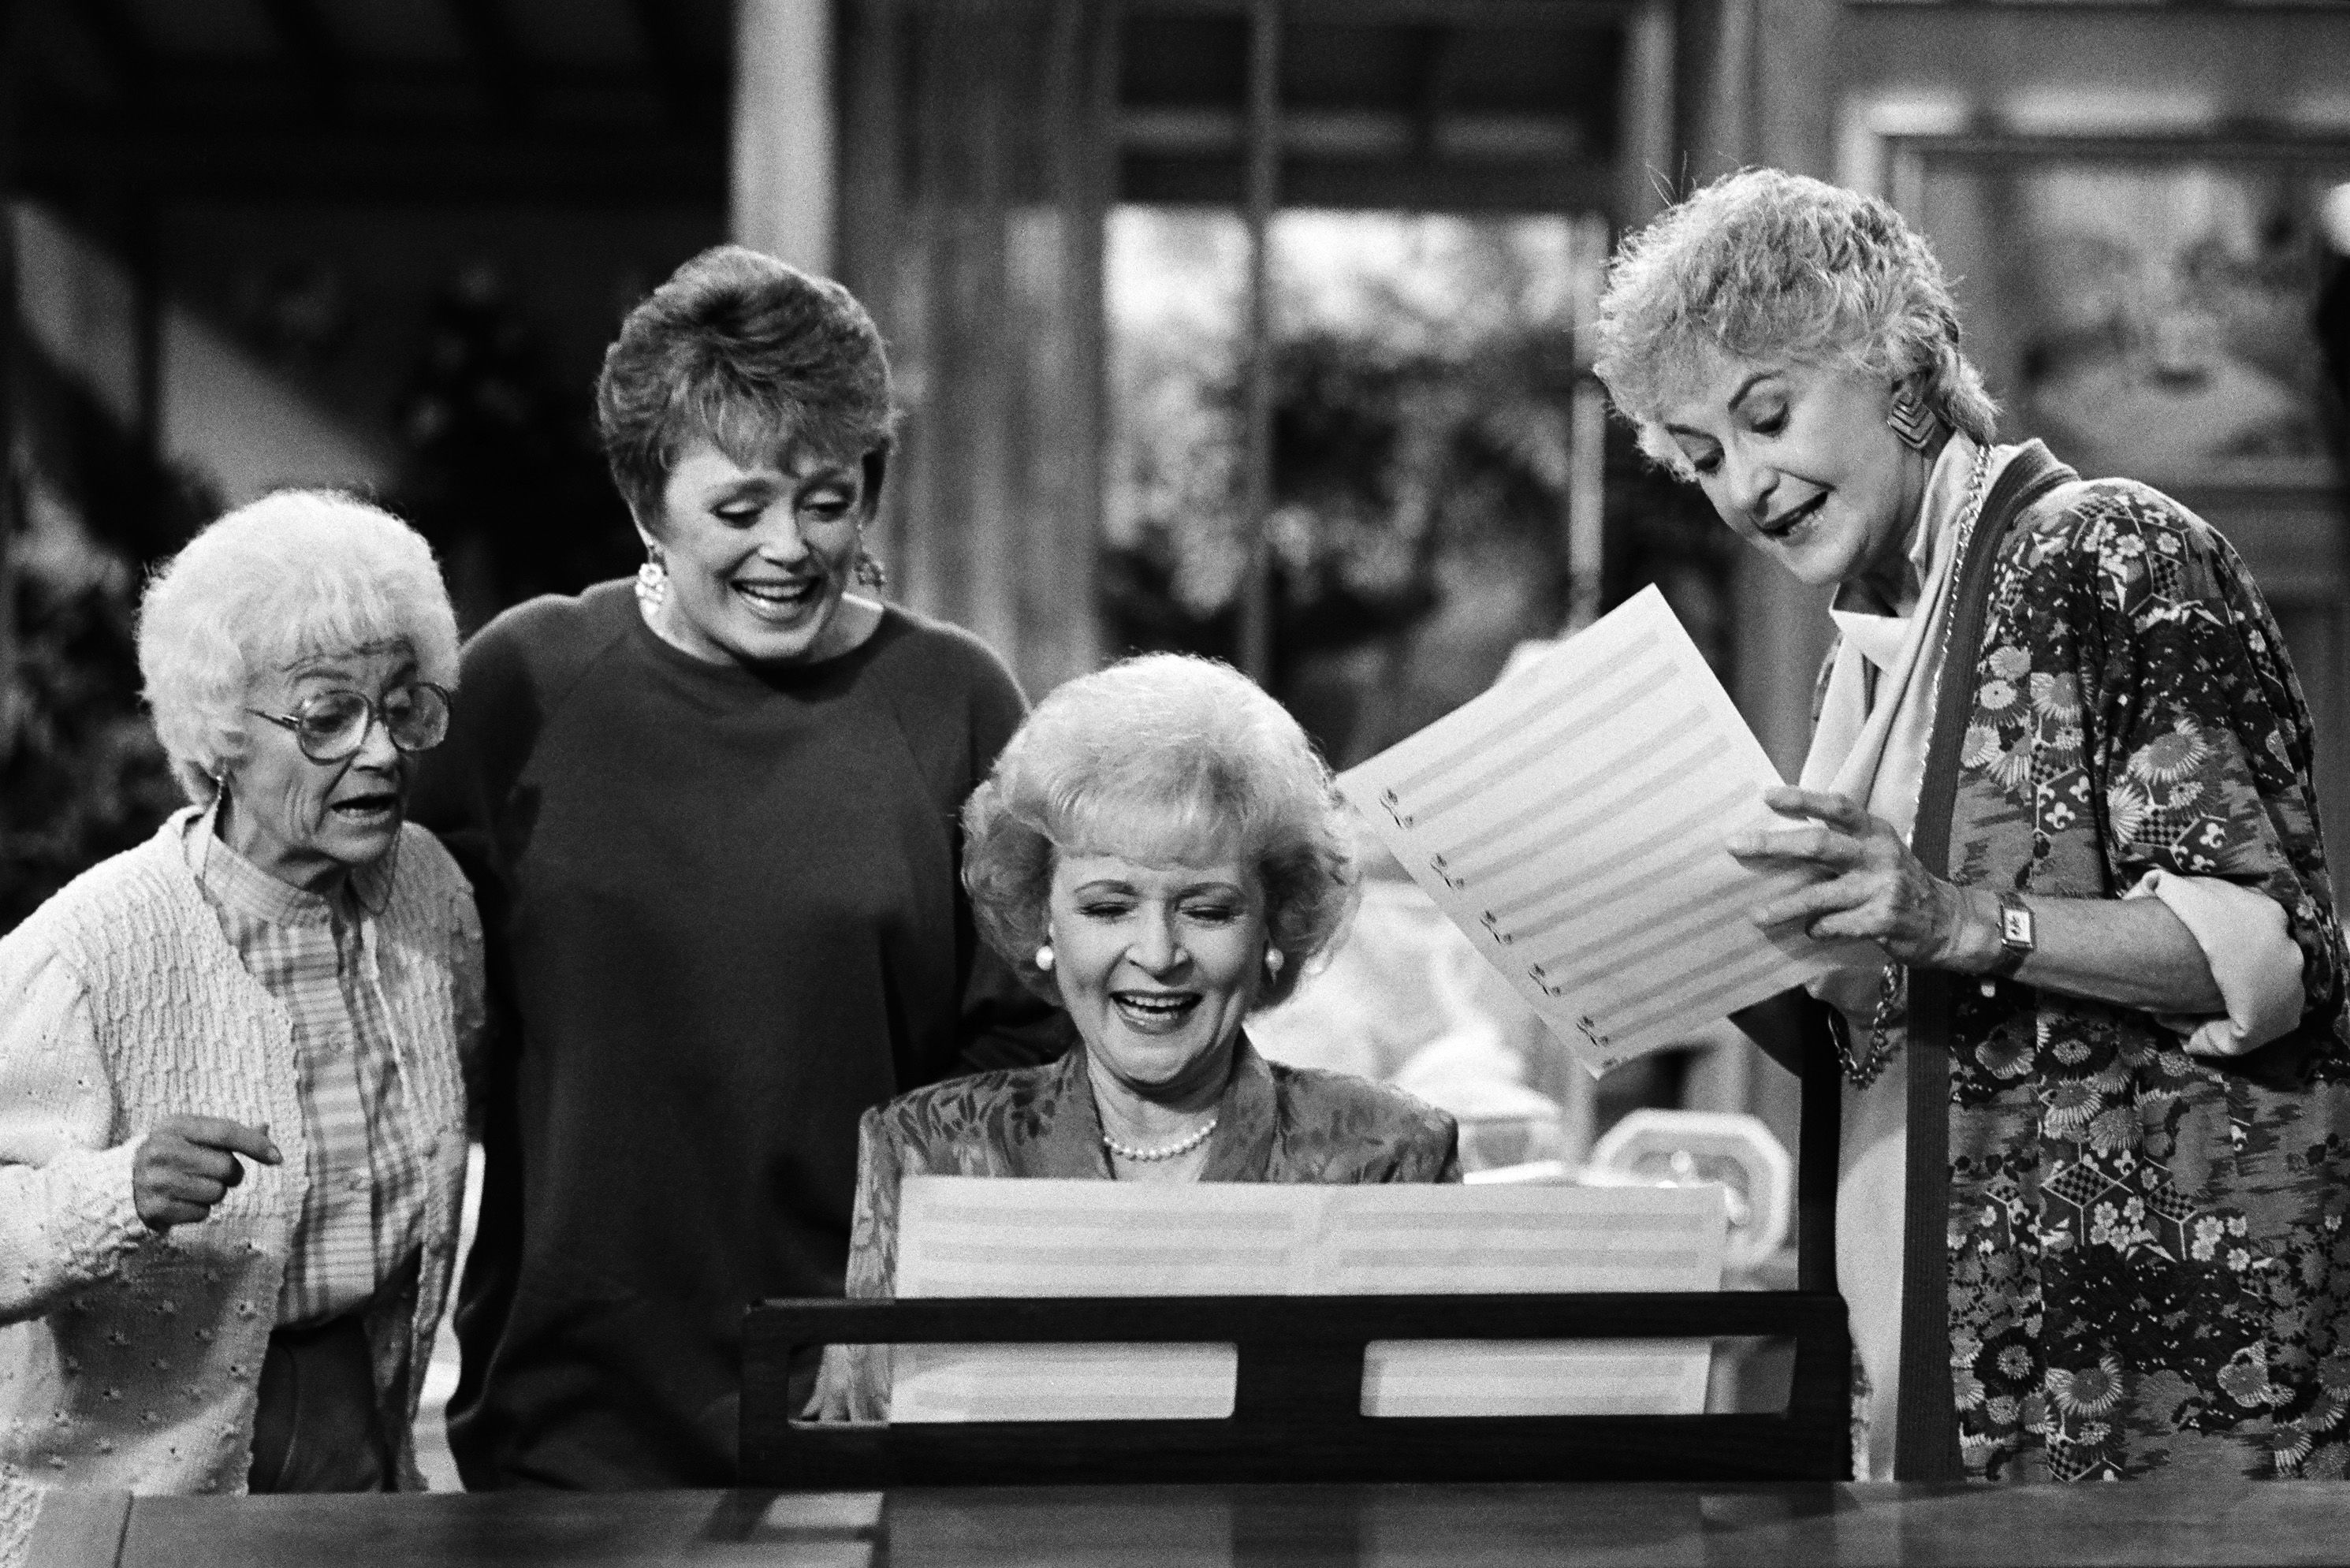 Flashback Friday: Do You Remember When 'The Golden Girls' Cast Performed for the Royal Family?